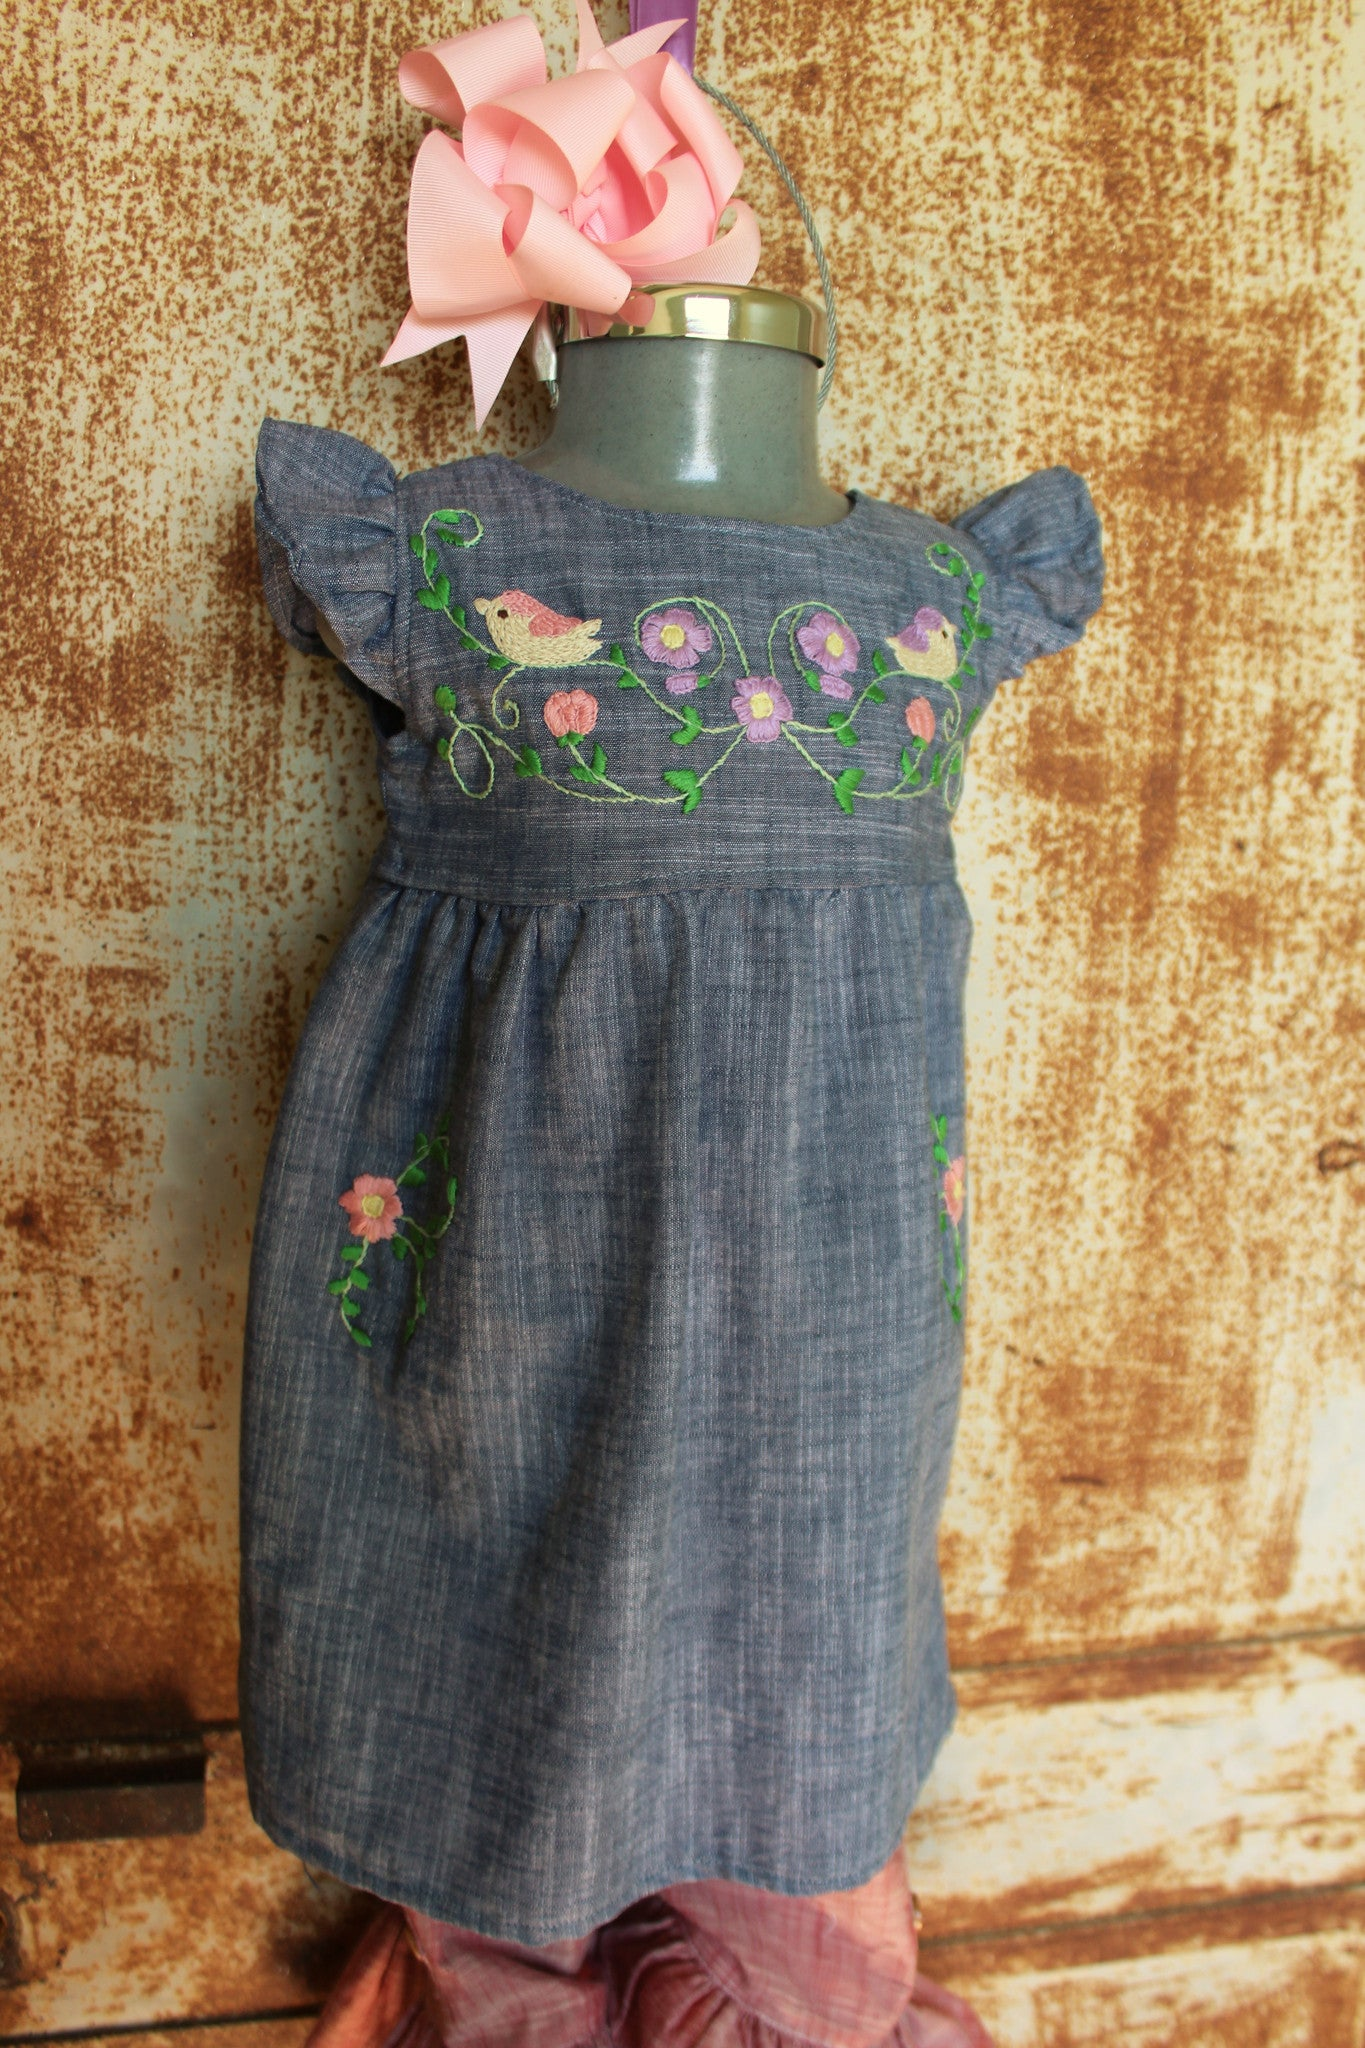 Traditional Oaxacan Tunic - Birdies & Floral on Chambray -